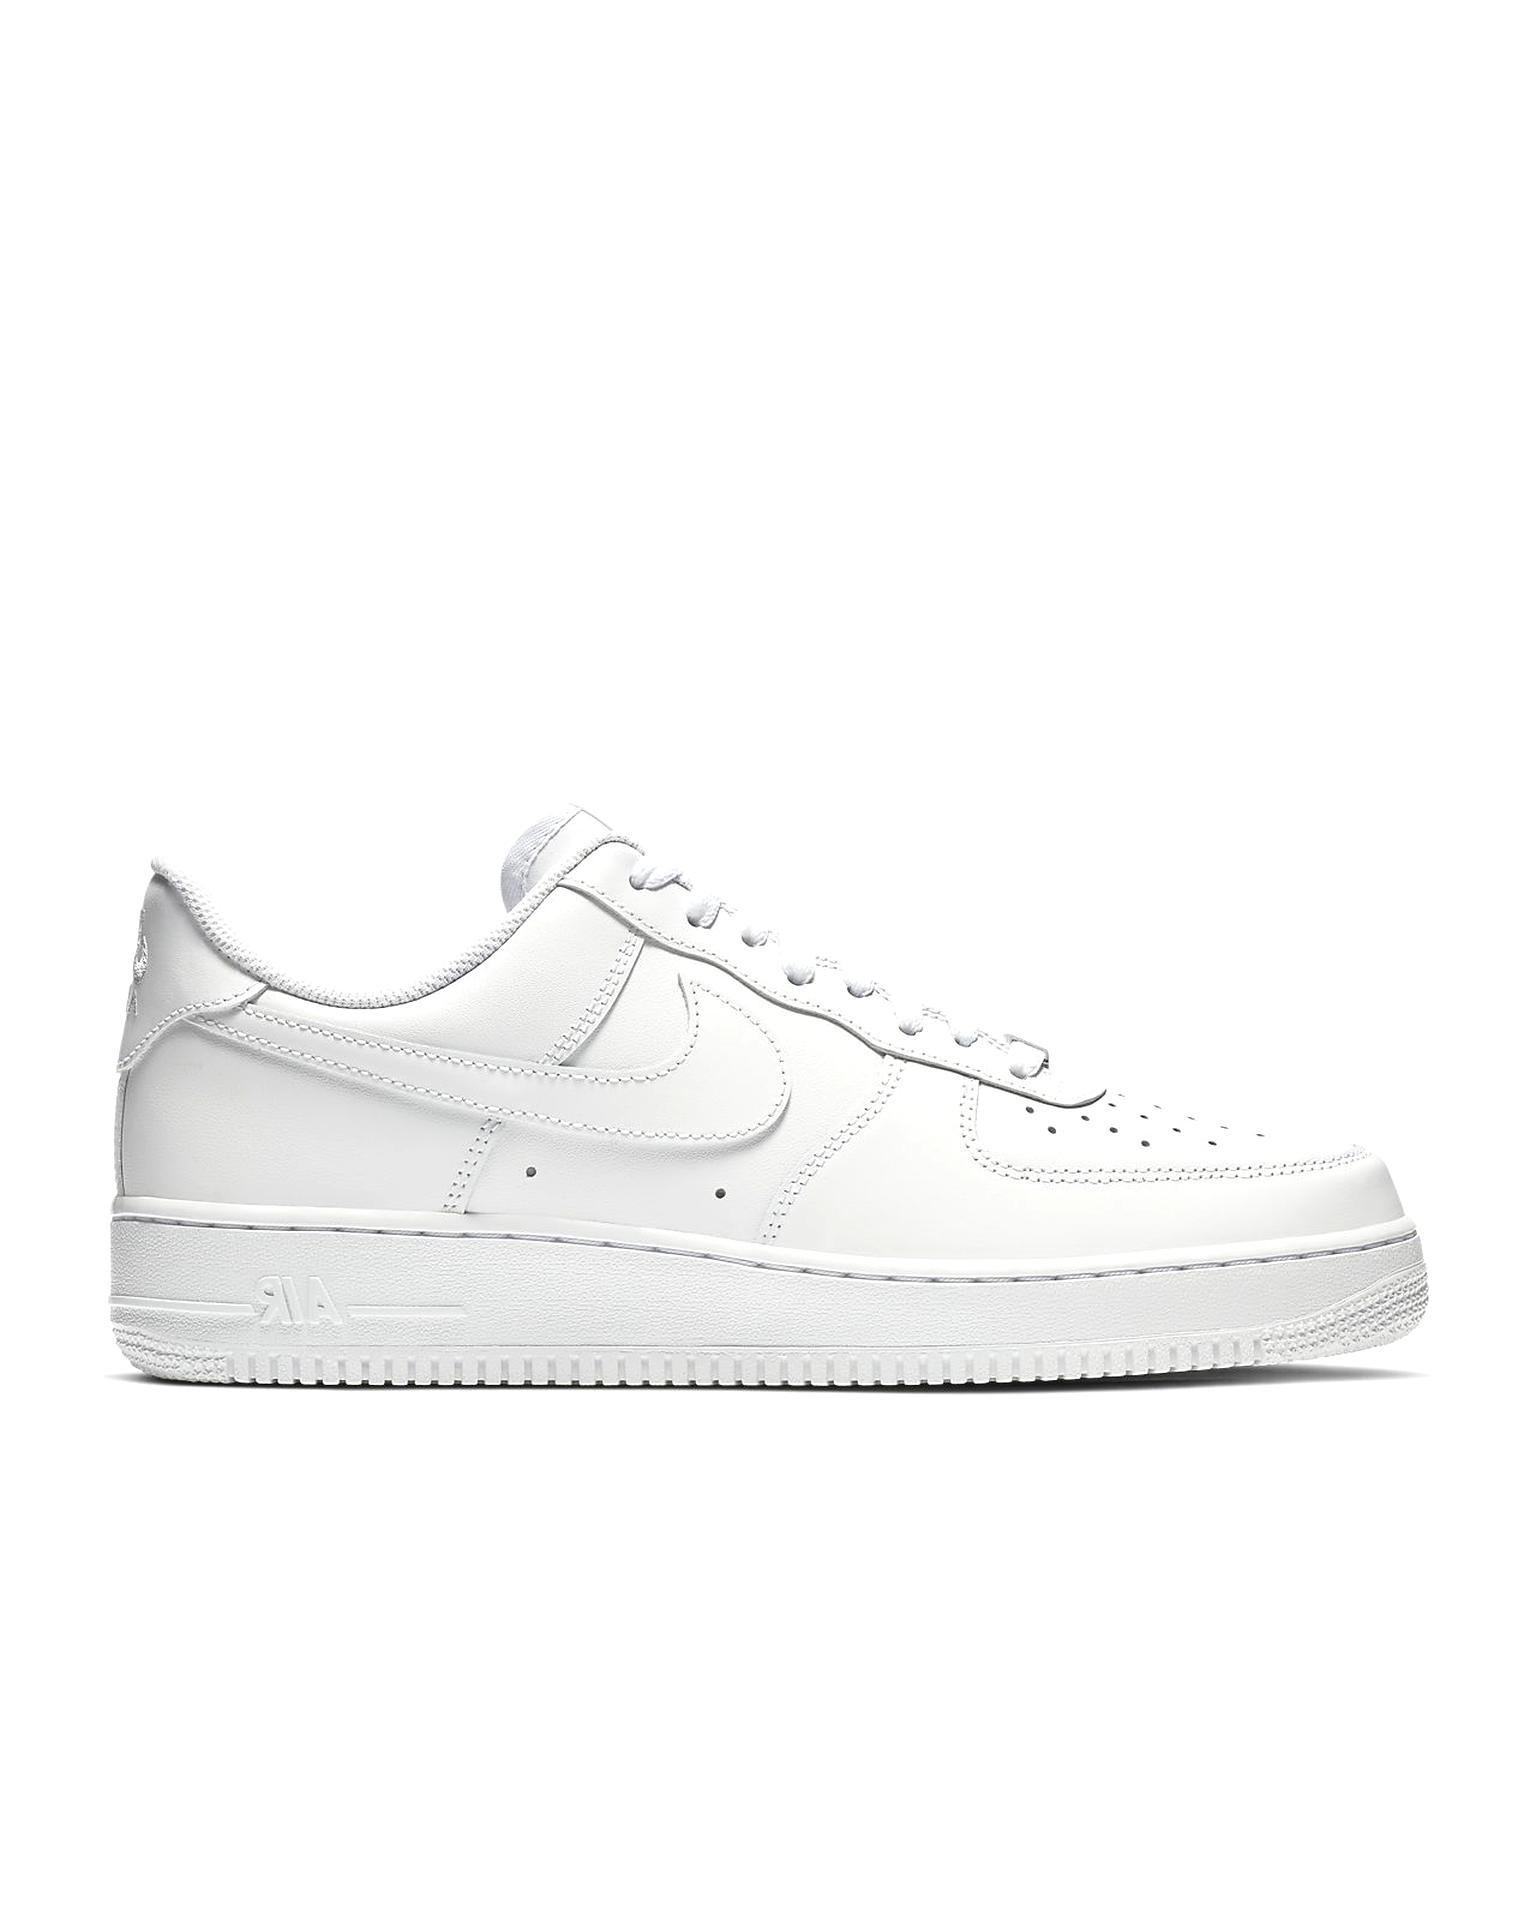 Baskets basses Air Force 1 '07 SE LX Nike en blanc pour